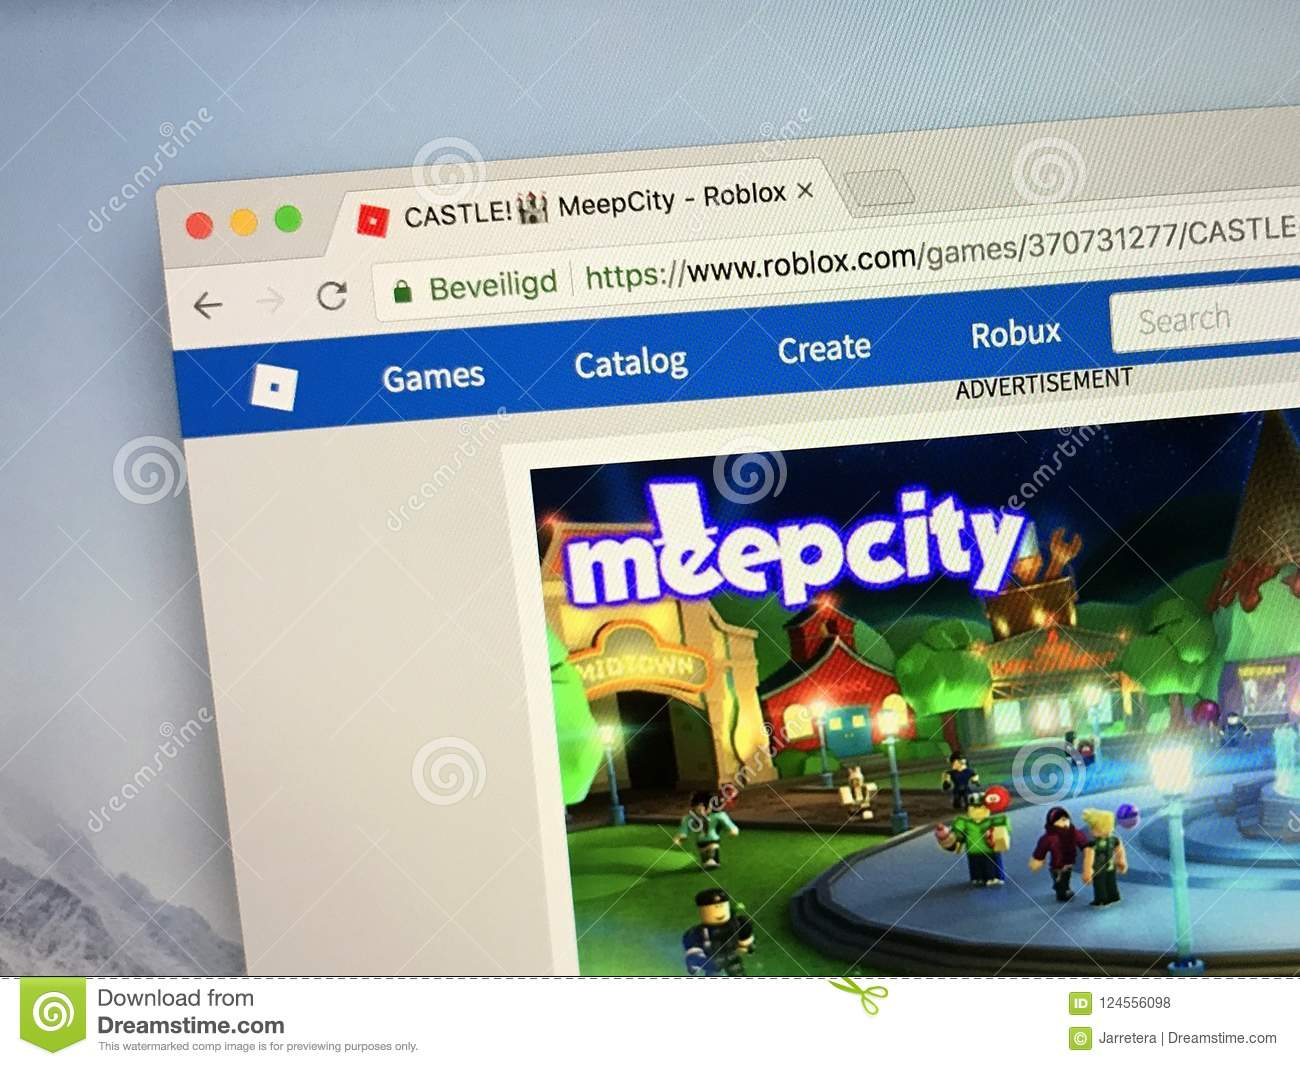 Roblox Game Night - Website Of The Roblox Game Meepcity Editorial Stock Photo Image